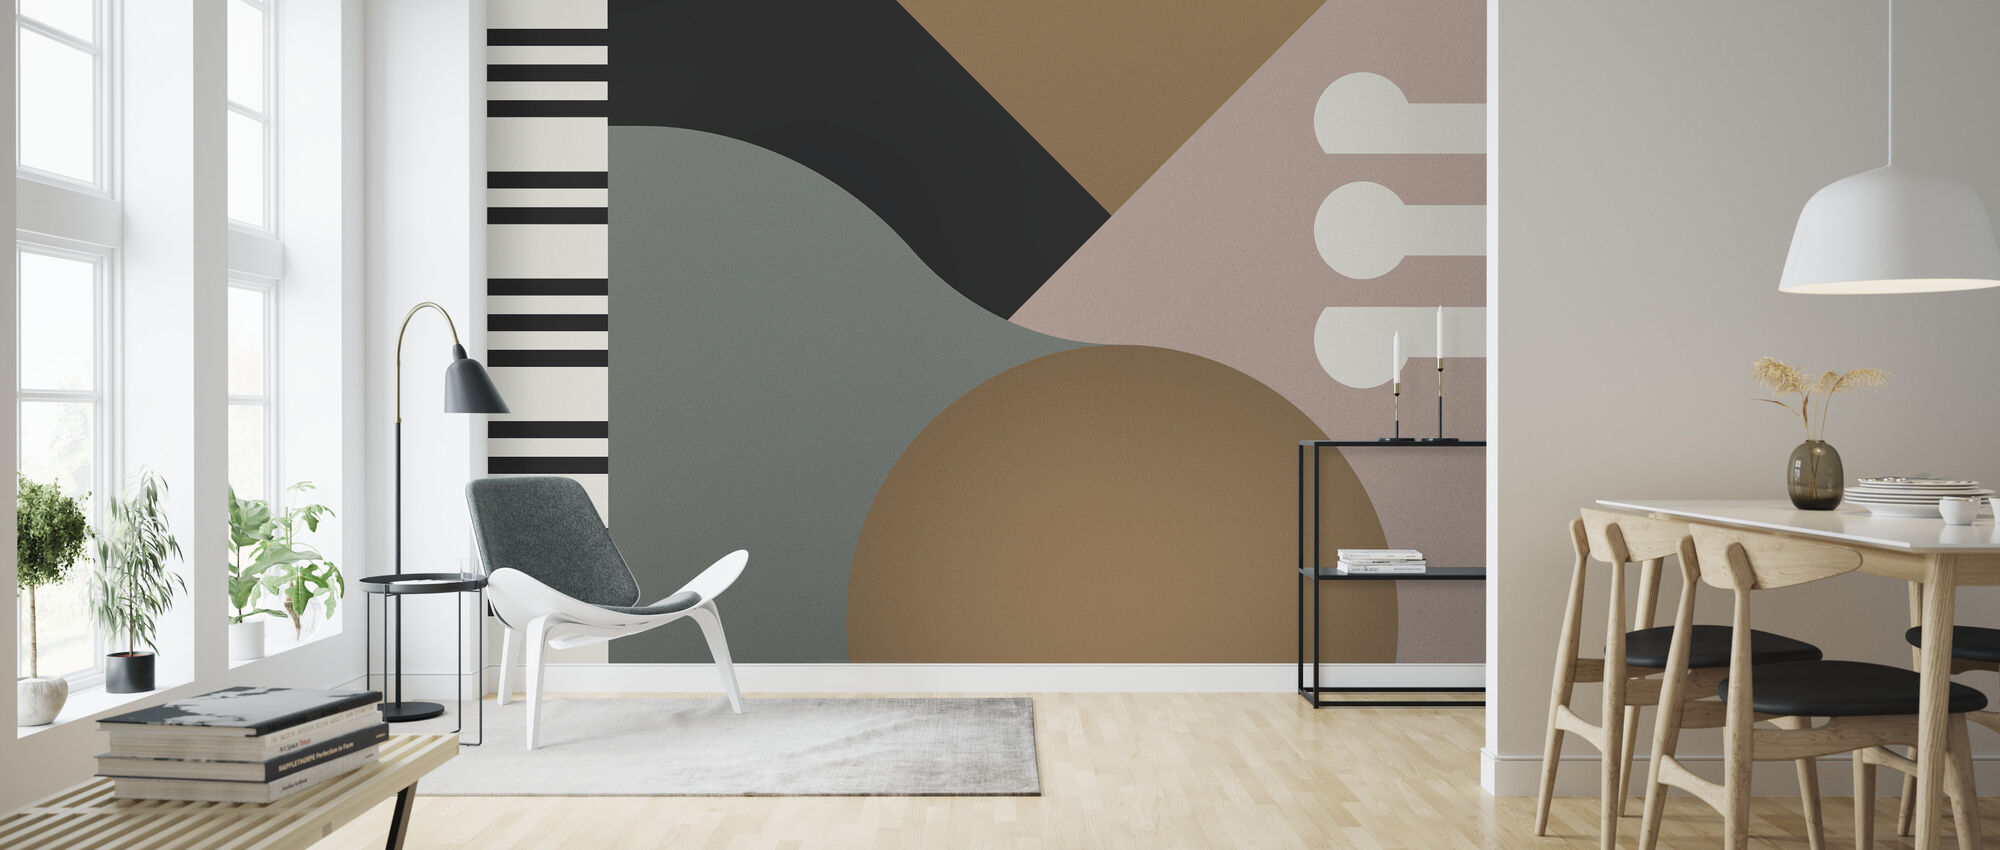 Geometric Contemporary Piano - Wallpaper - Living Room